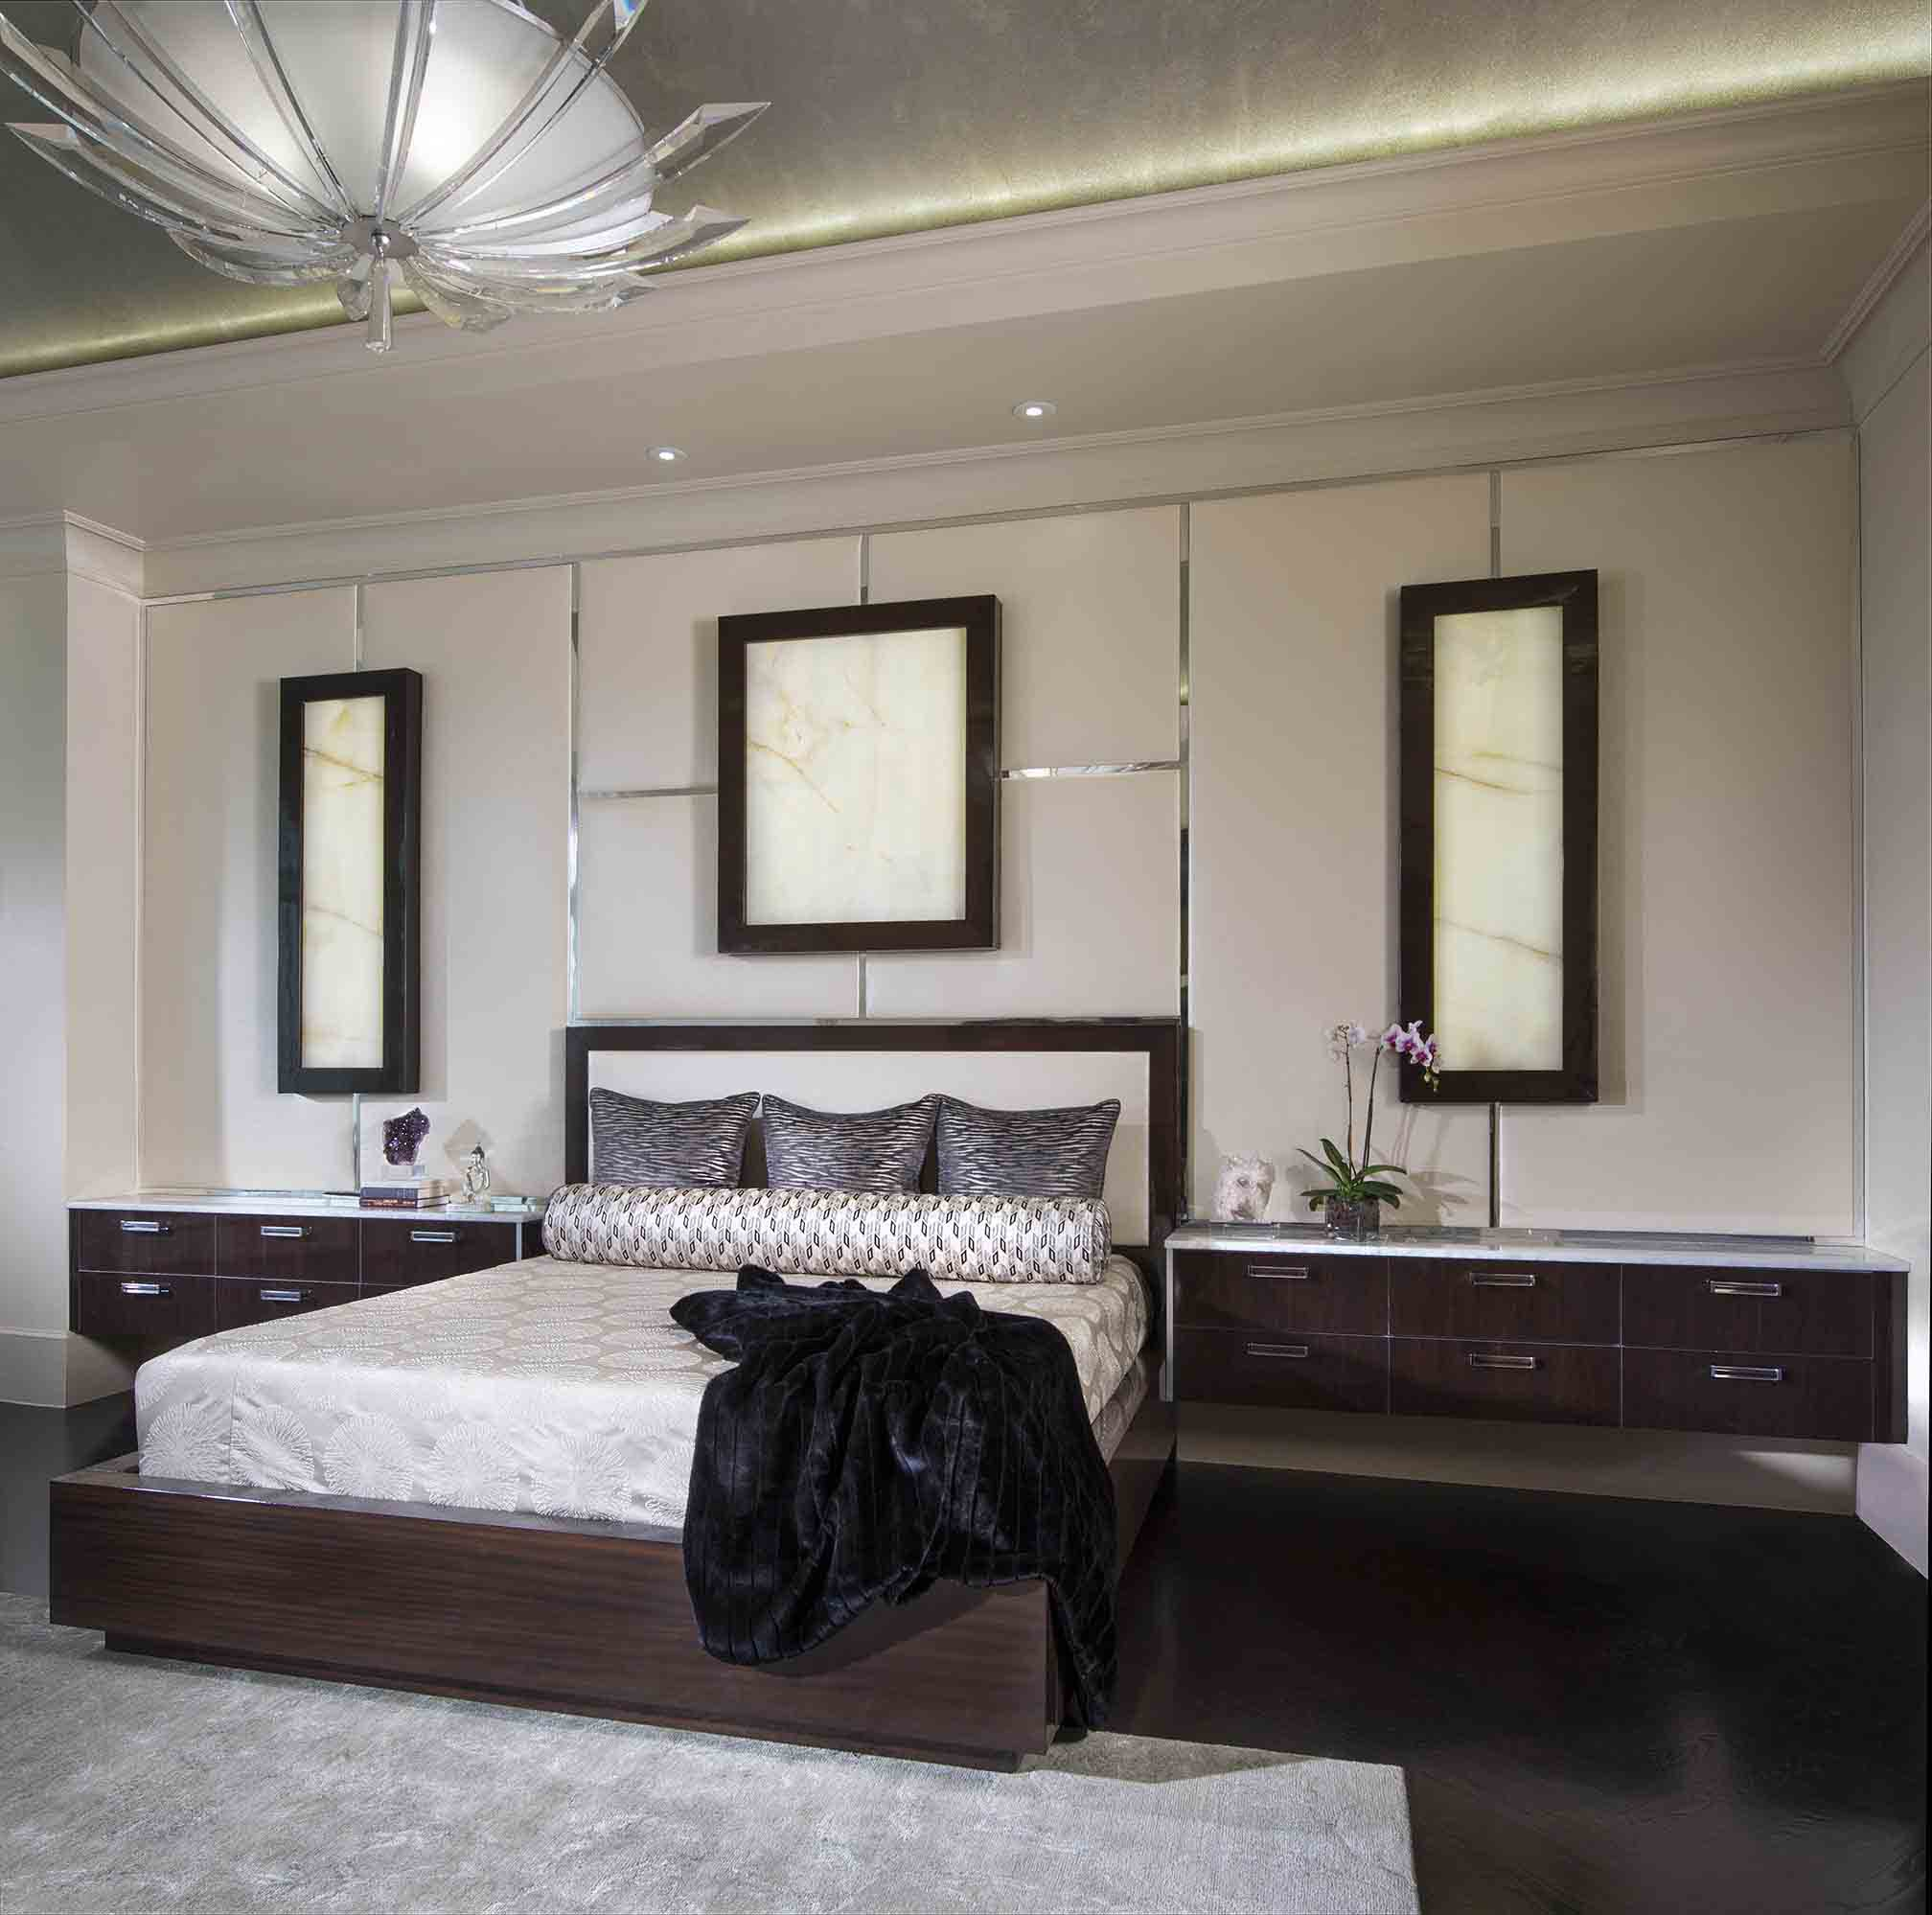 Modern Bedroom With Built In Floating Dressers (View 9 of 23)